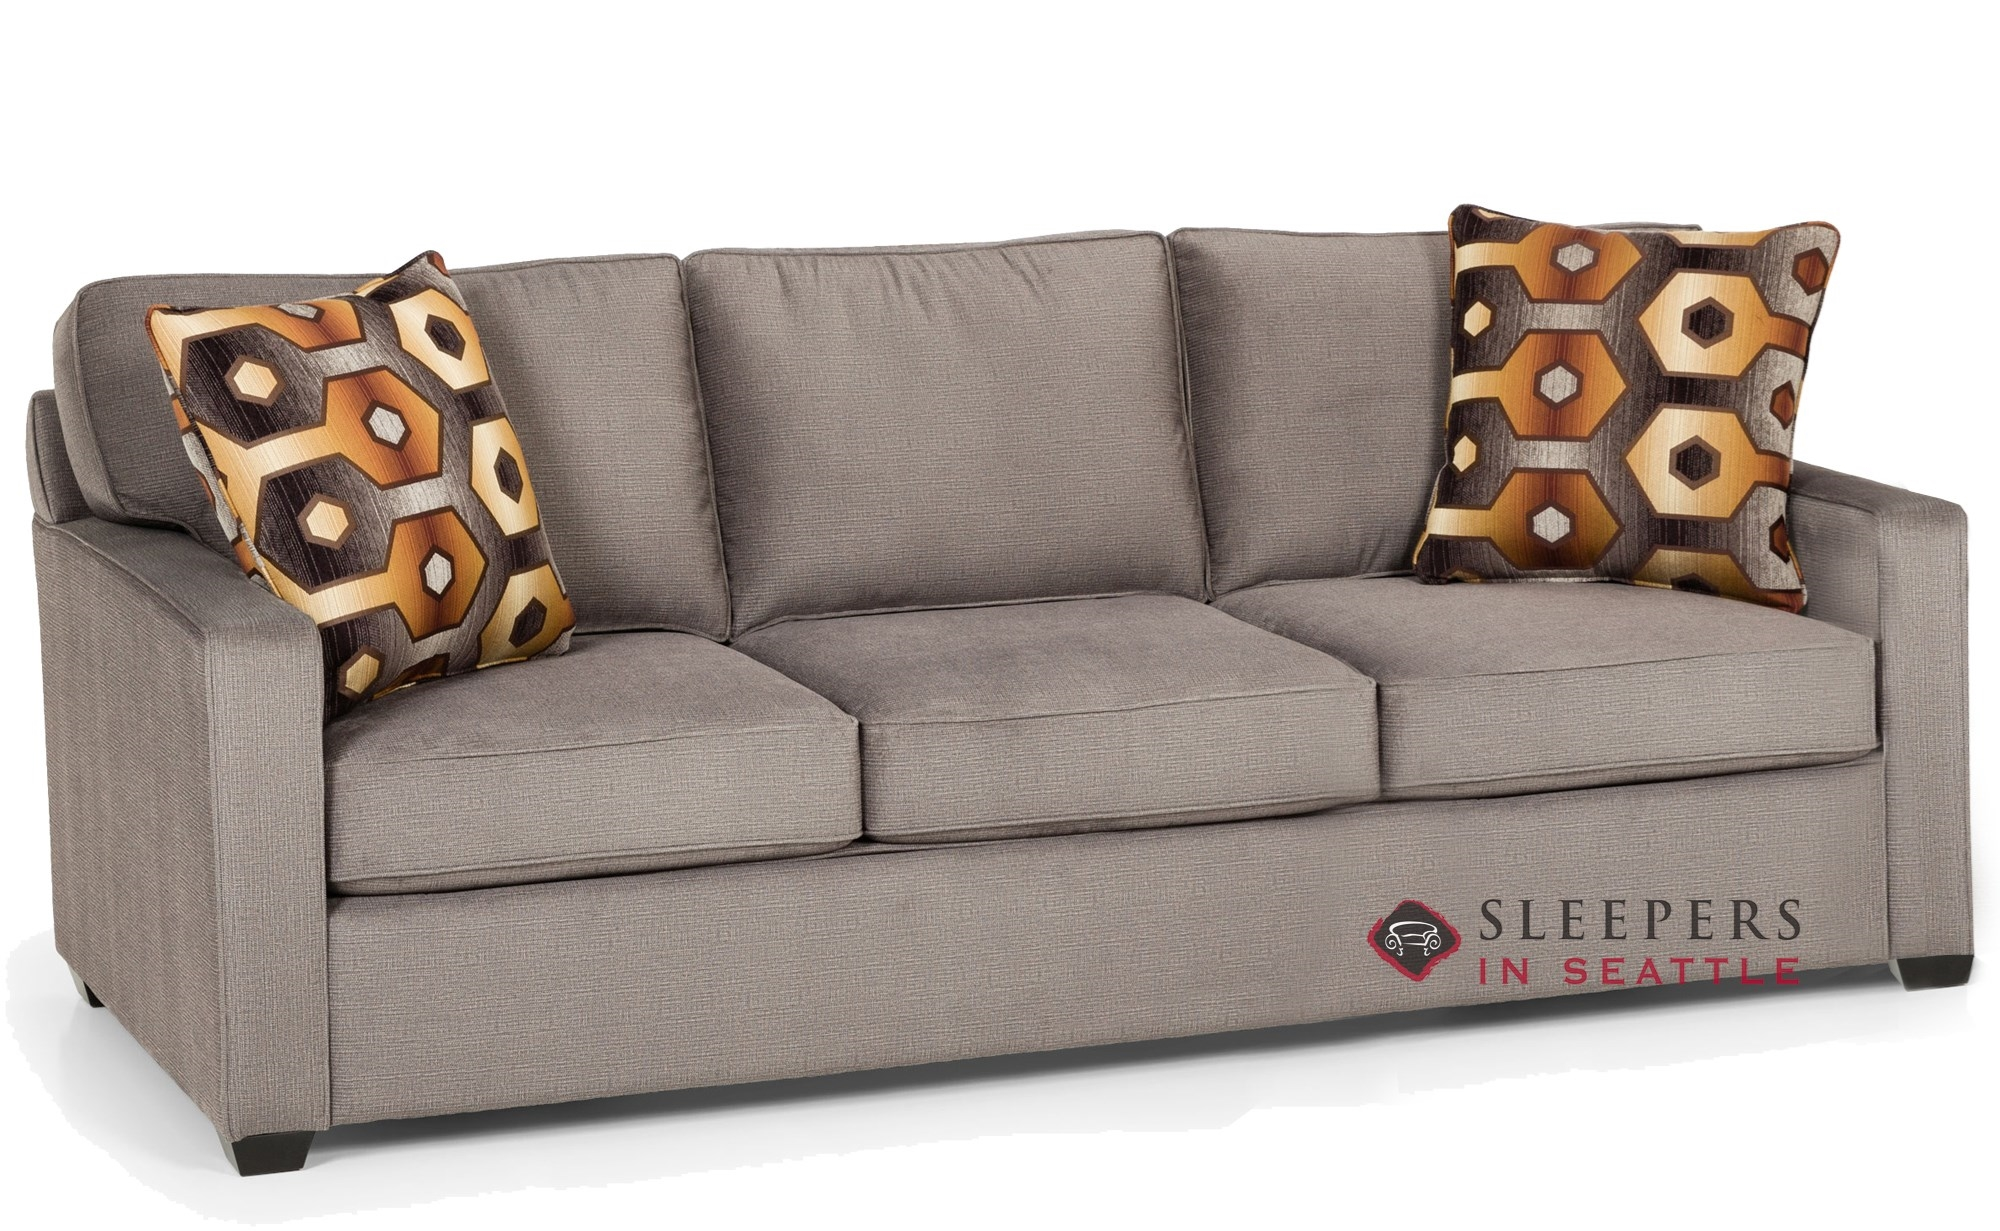 Sofa Queen The Stanton 403 Queen Sleeper Sofa